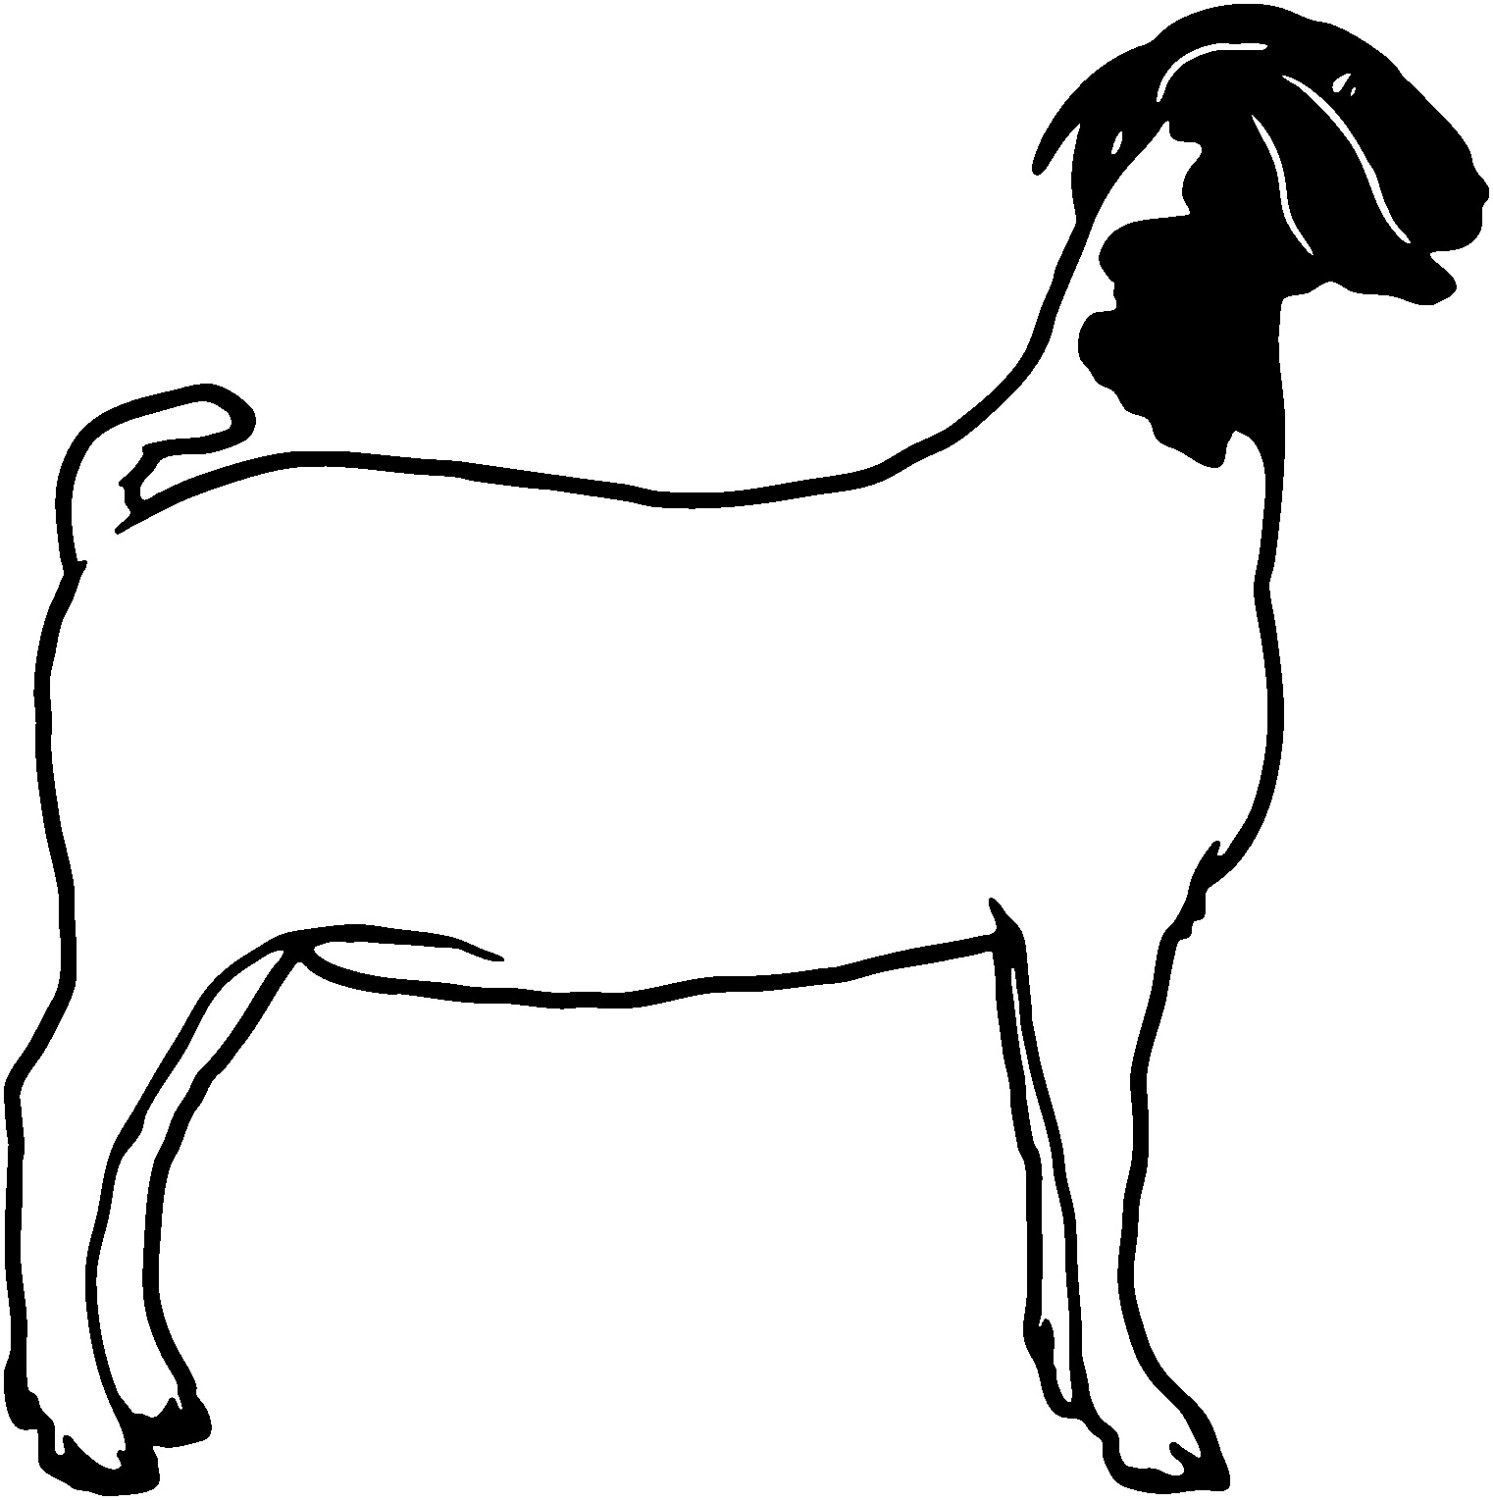 Girl looking out window at goats clipart png Pygmy Goat Drawing | Free download best Pygmy Goat Drawing on ... png